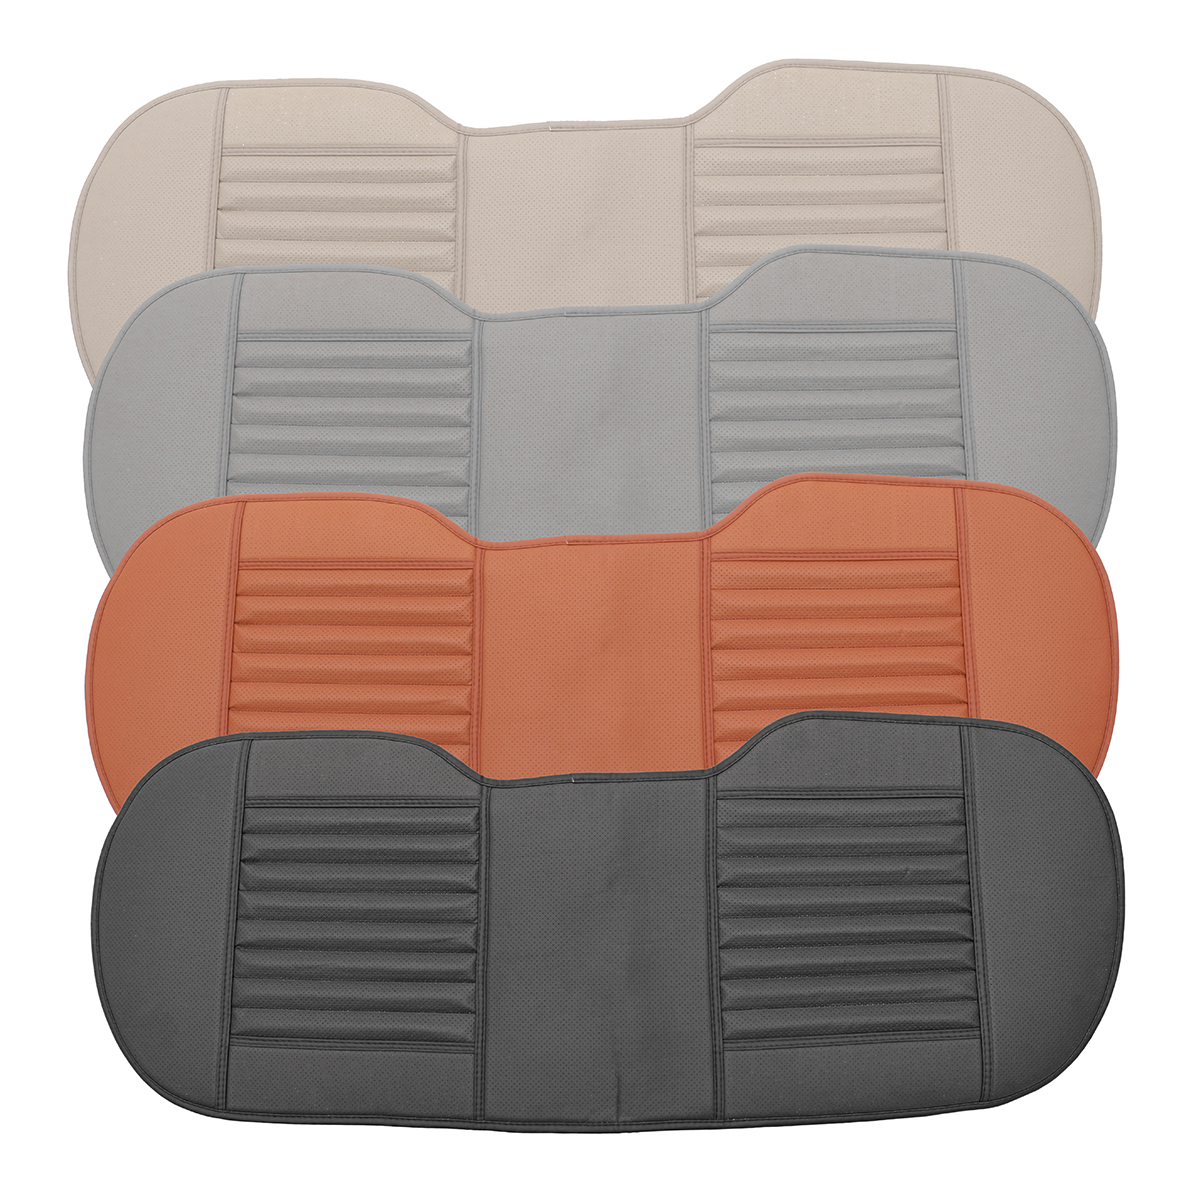 PU Leather Auto Car Vehicle Non-slip Long Rear Seat Chair Cover Protective Cushion Mat Pad, Breathable Car Interior Seat Cover